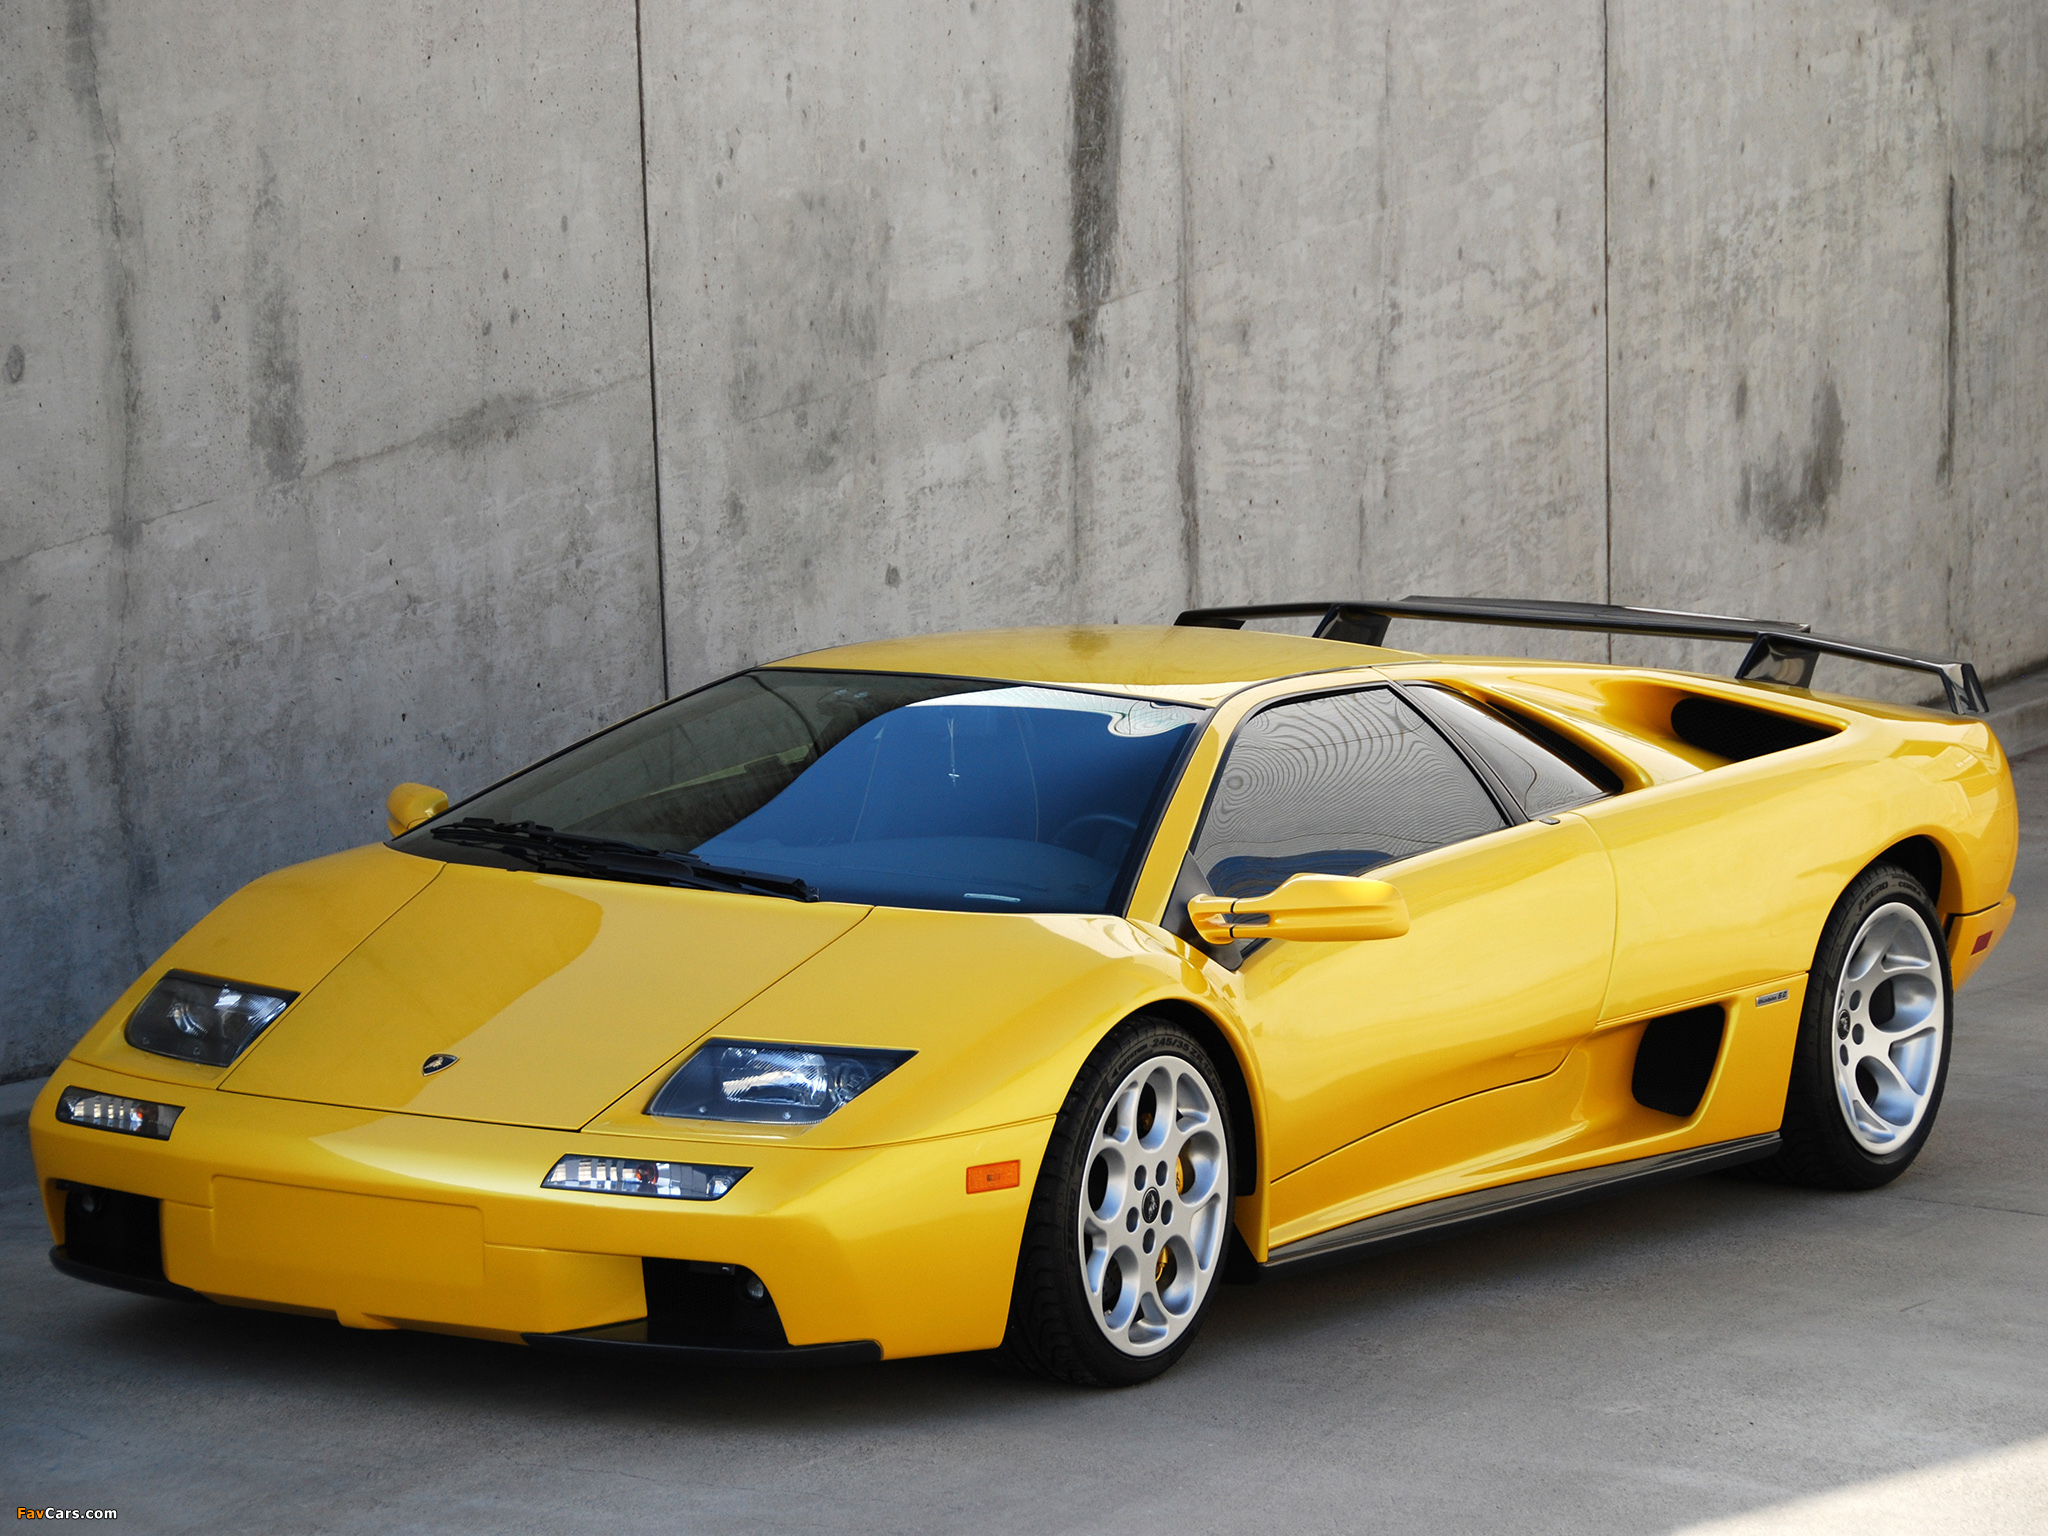 Wallpapers Of Lamborghini Diablo Vt 6 0 2000 01 2048x1536